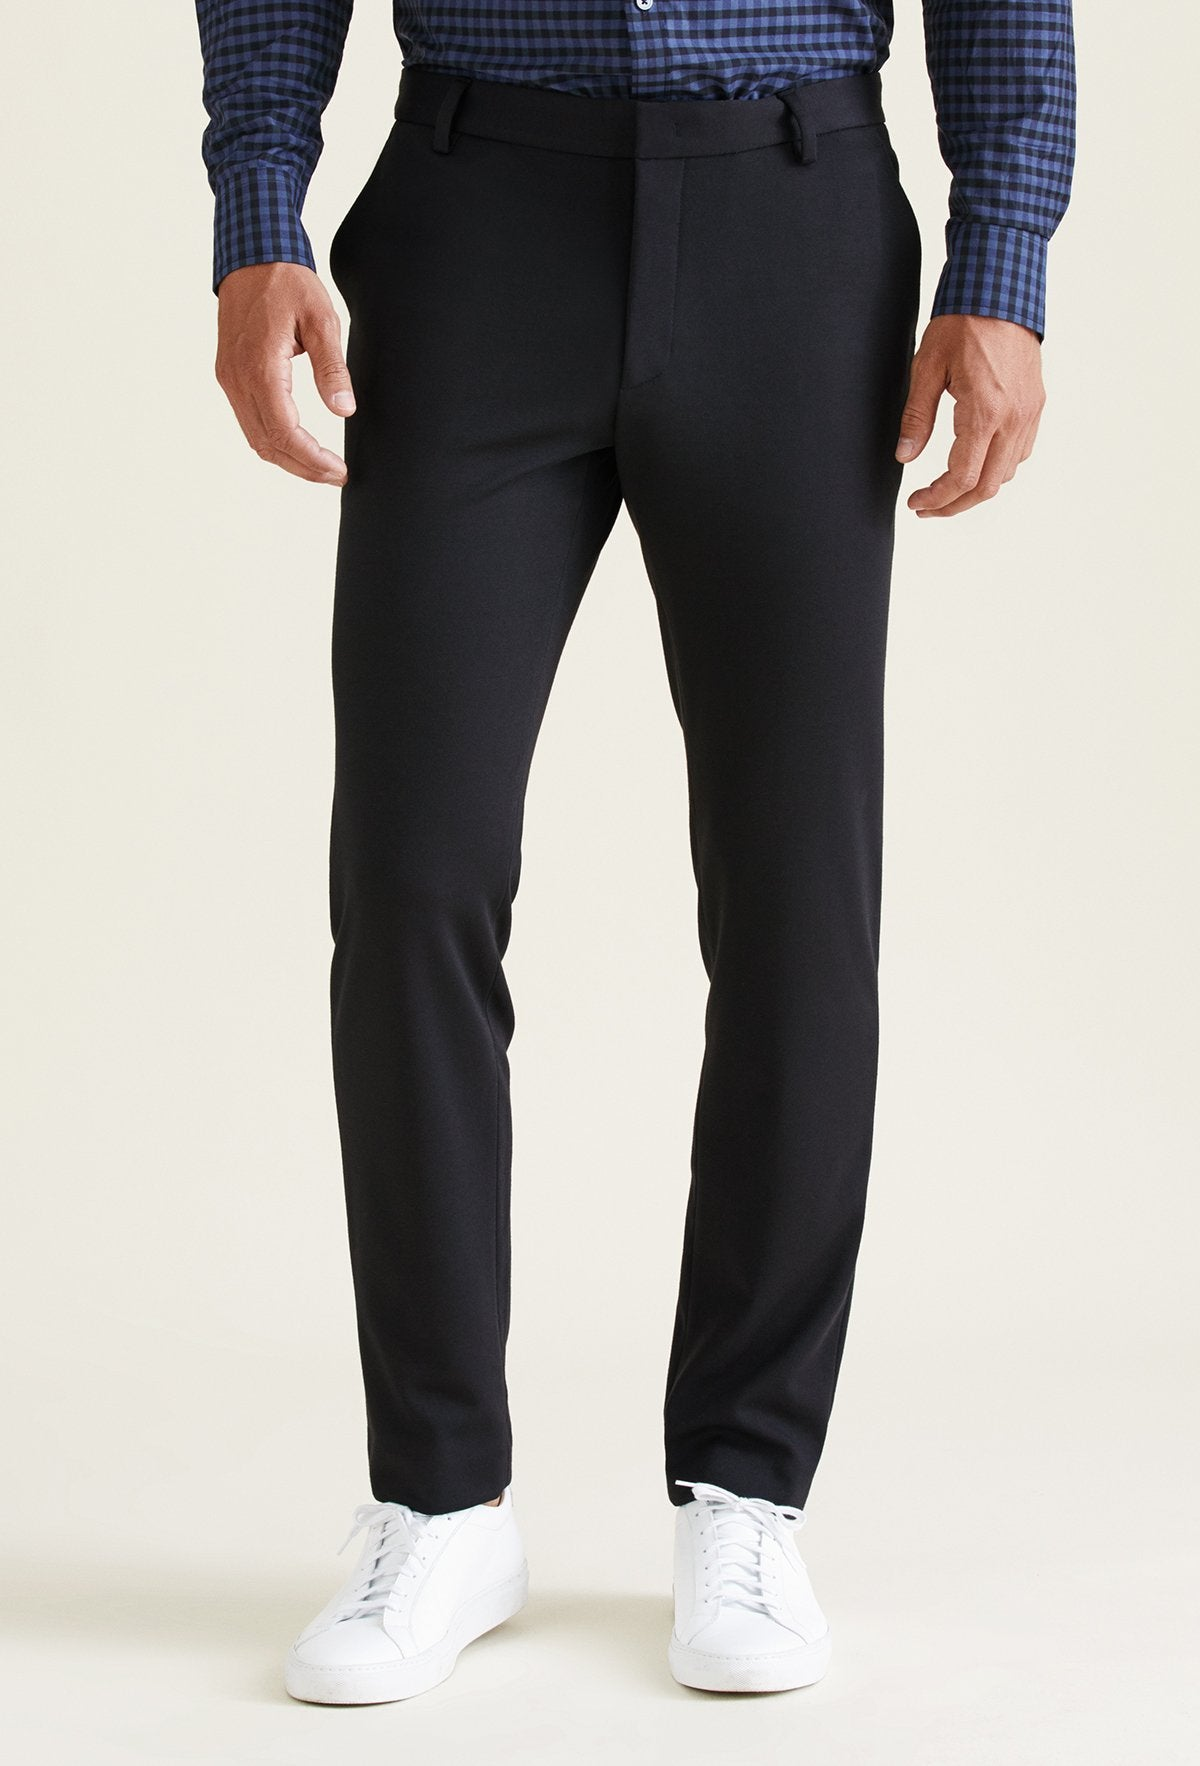 men's black knit dress pants featuring slant pockets and made with polyester